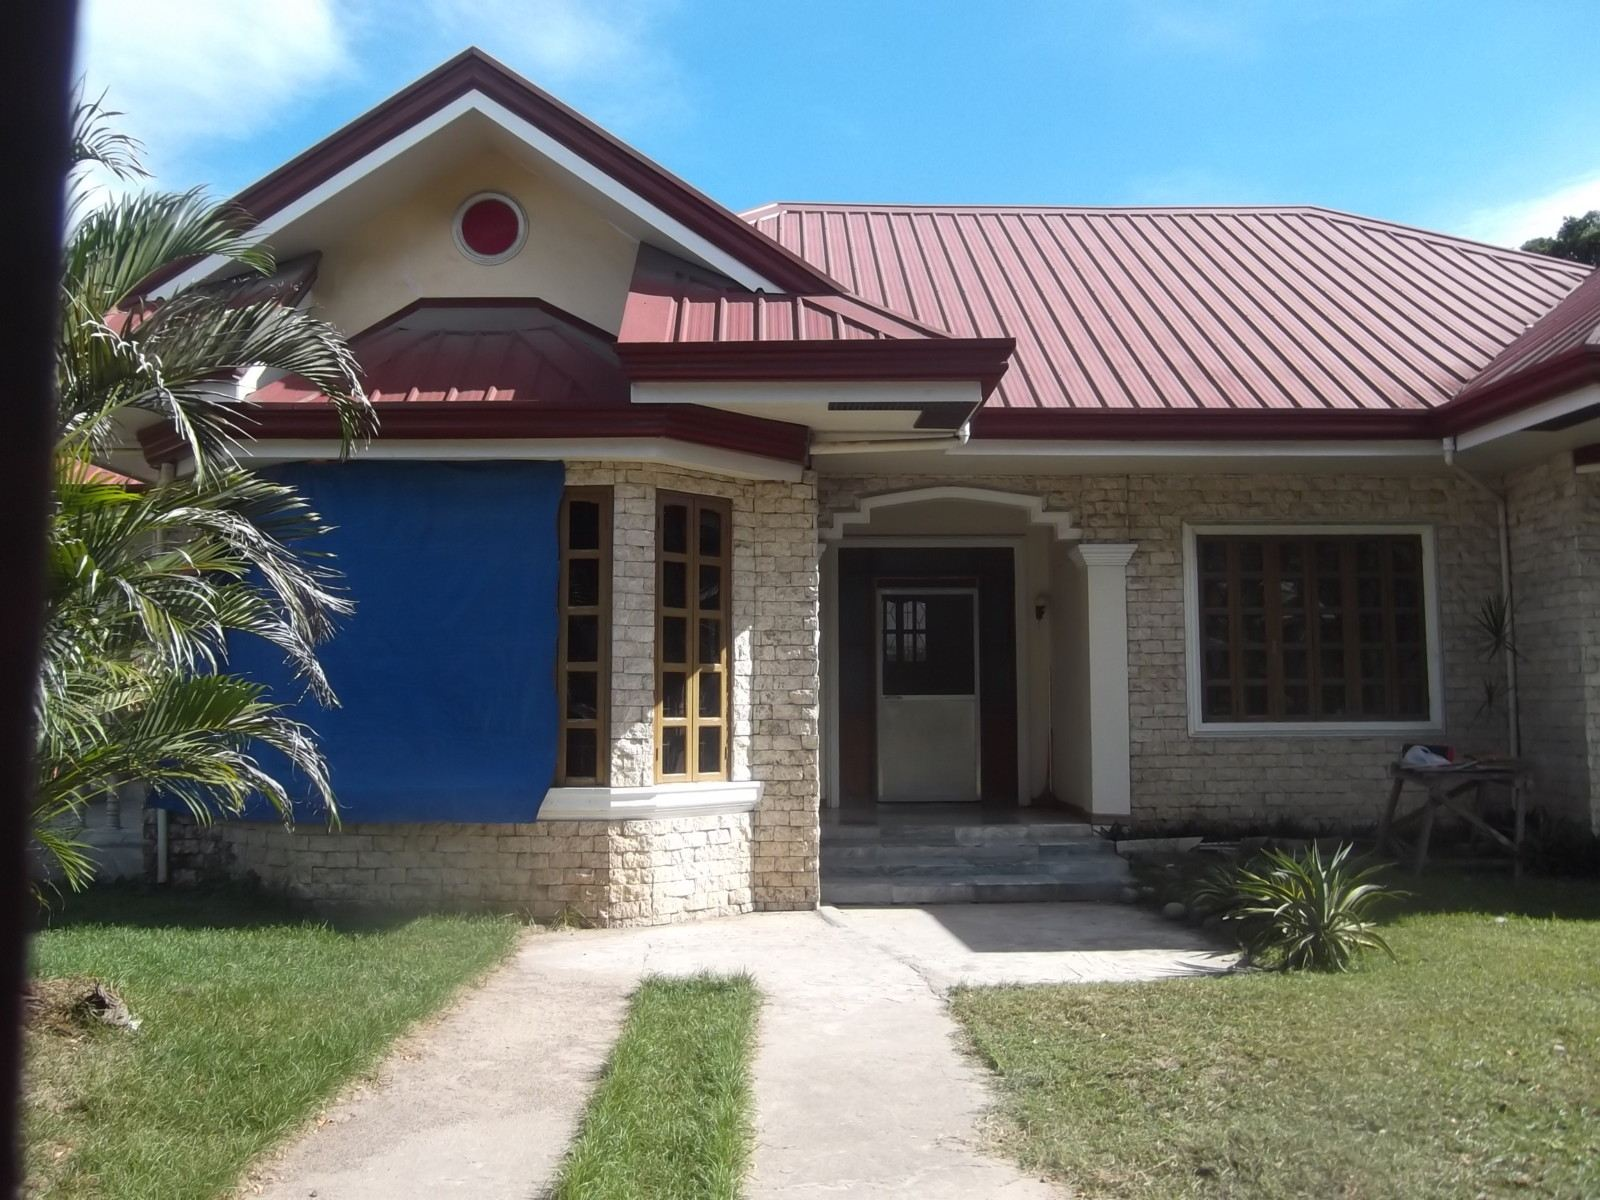 DUMAGUETE CITY HOUSE FOR SALE AT 7.5 MIL PHP